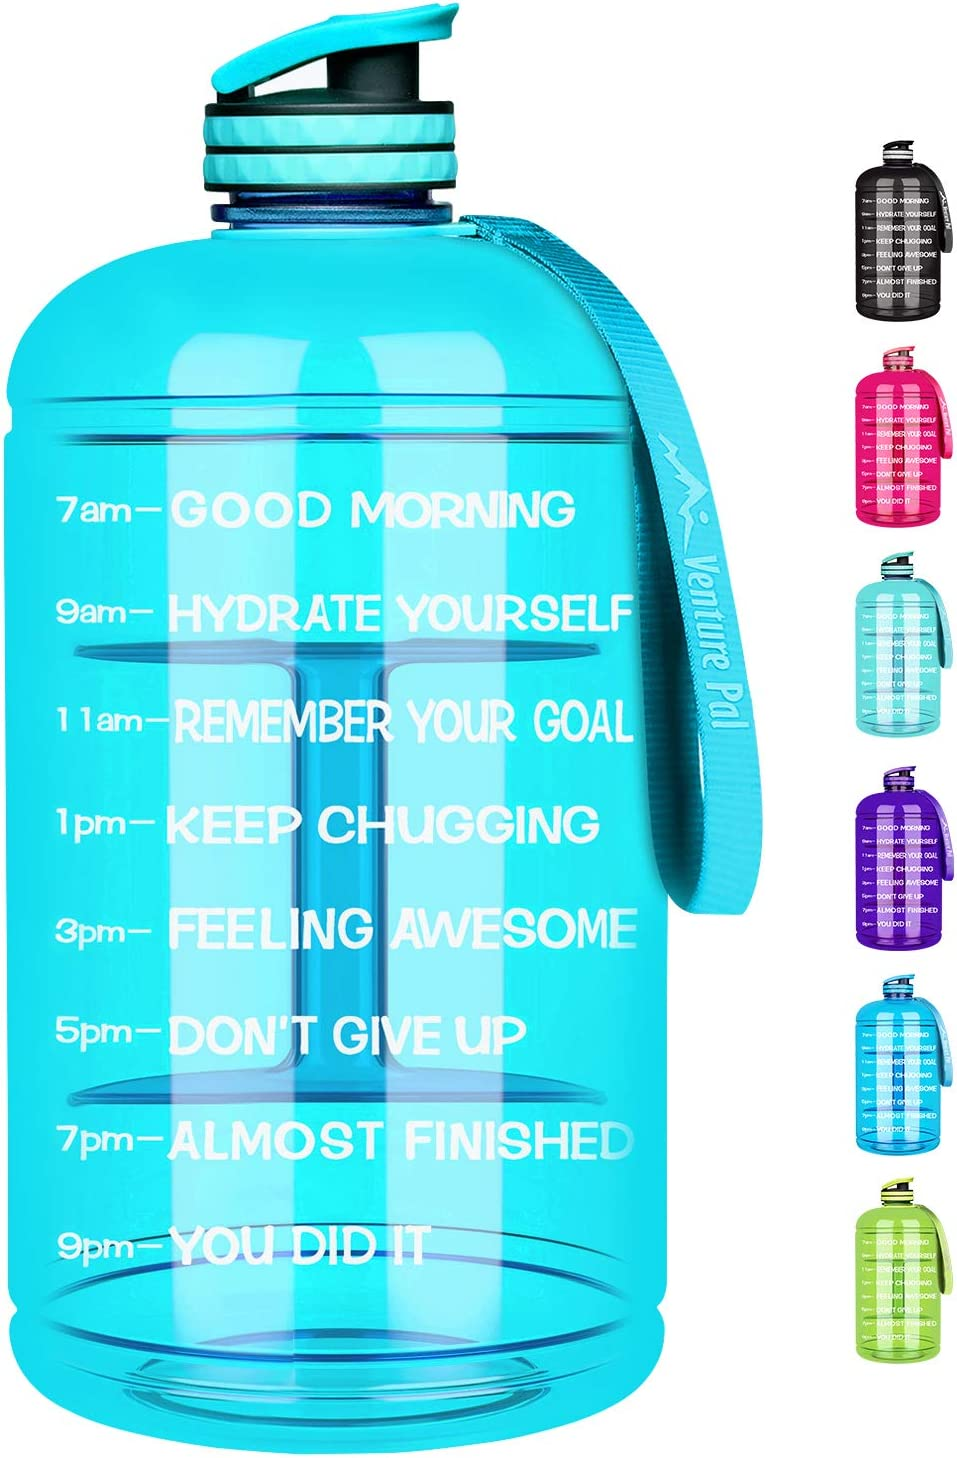 Venture Pal Large Half Gallon//64oz Motivational BPA Free Leakproof Water Bottle with Straw /& Time Marker Perfect for Fitness Gym Camping Outdoor Sports